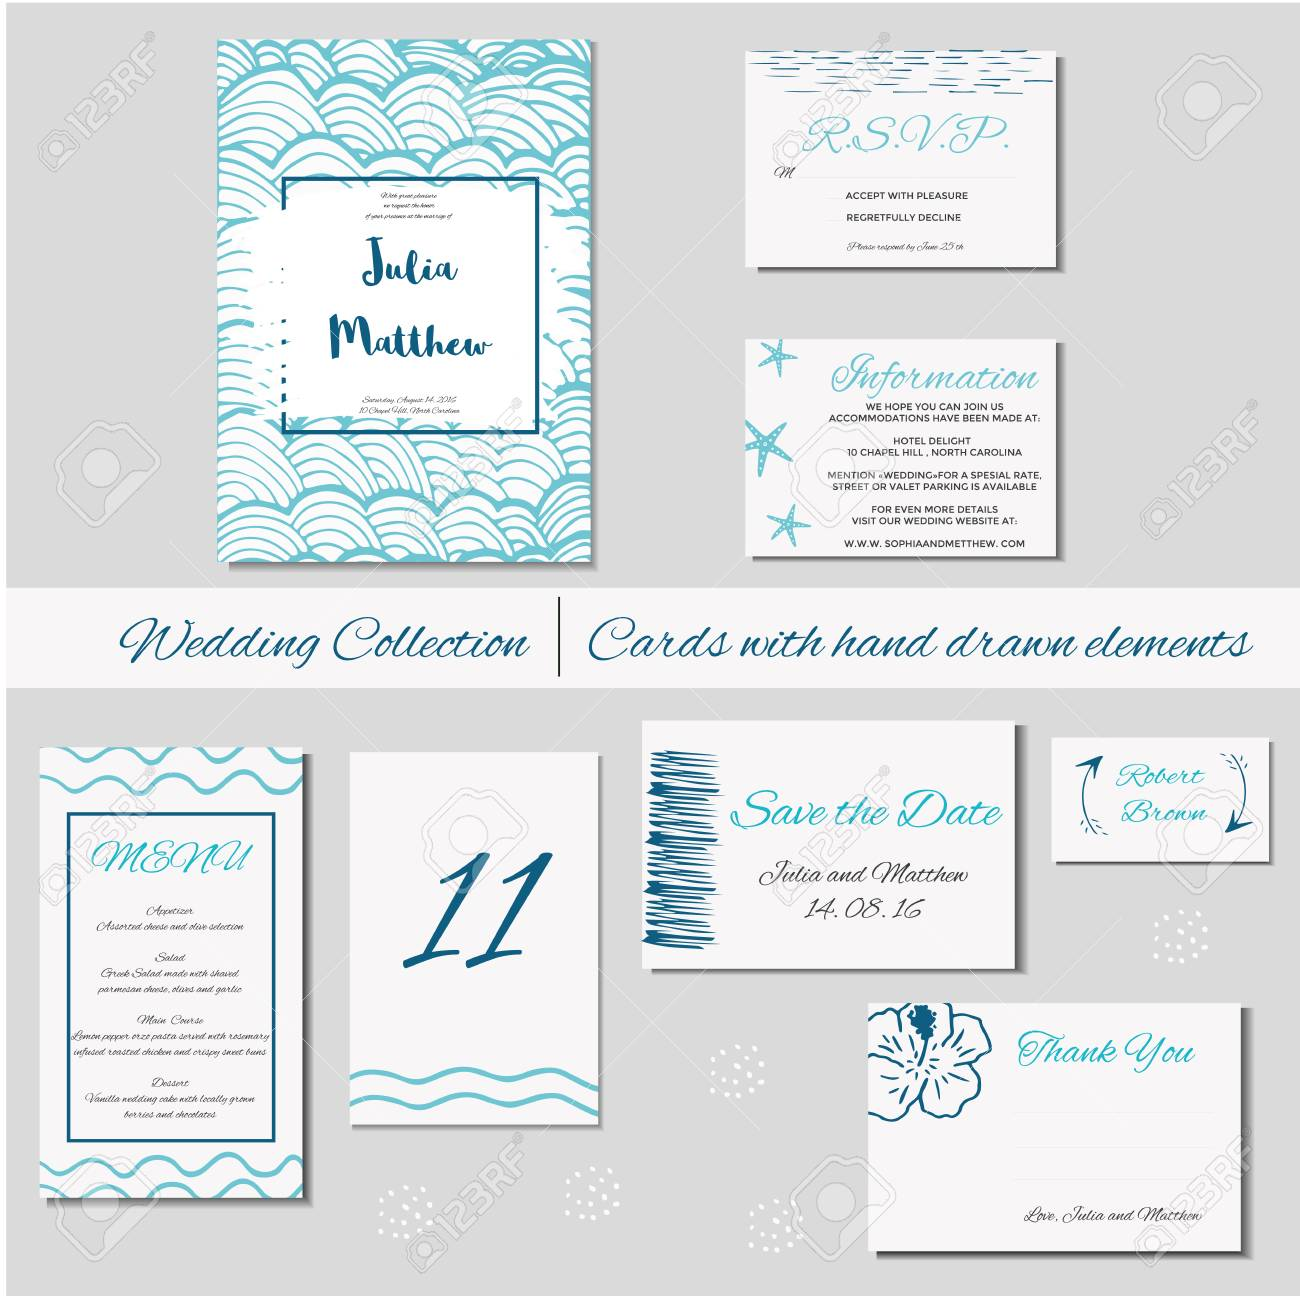 Wedding Invitation, Thank You, Save The Date, Baby Shower, Menu, Information